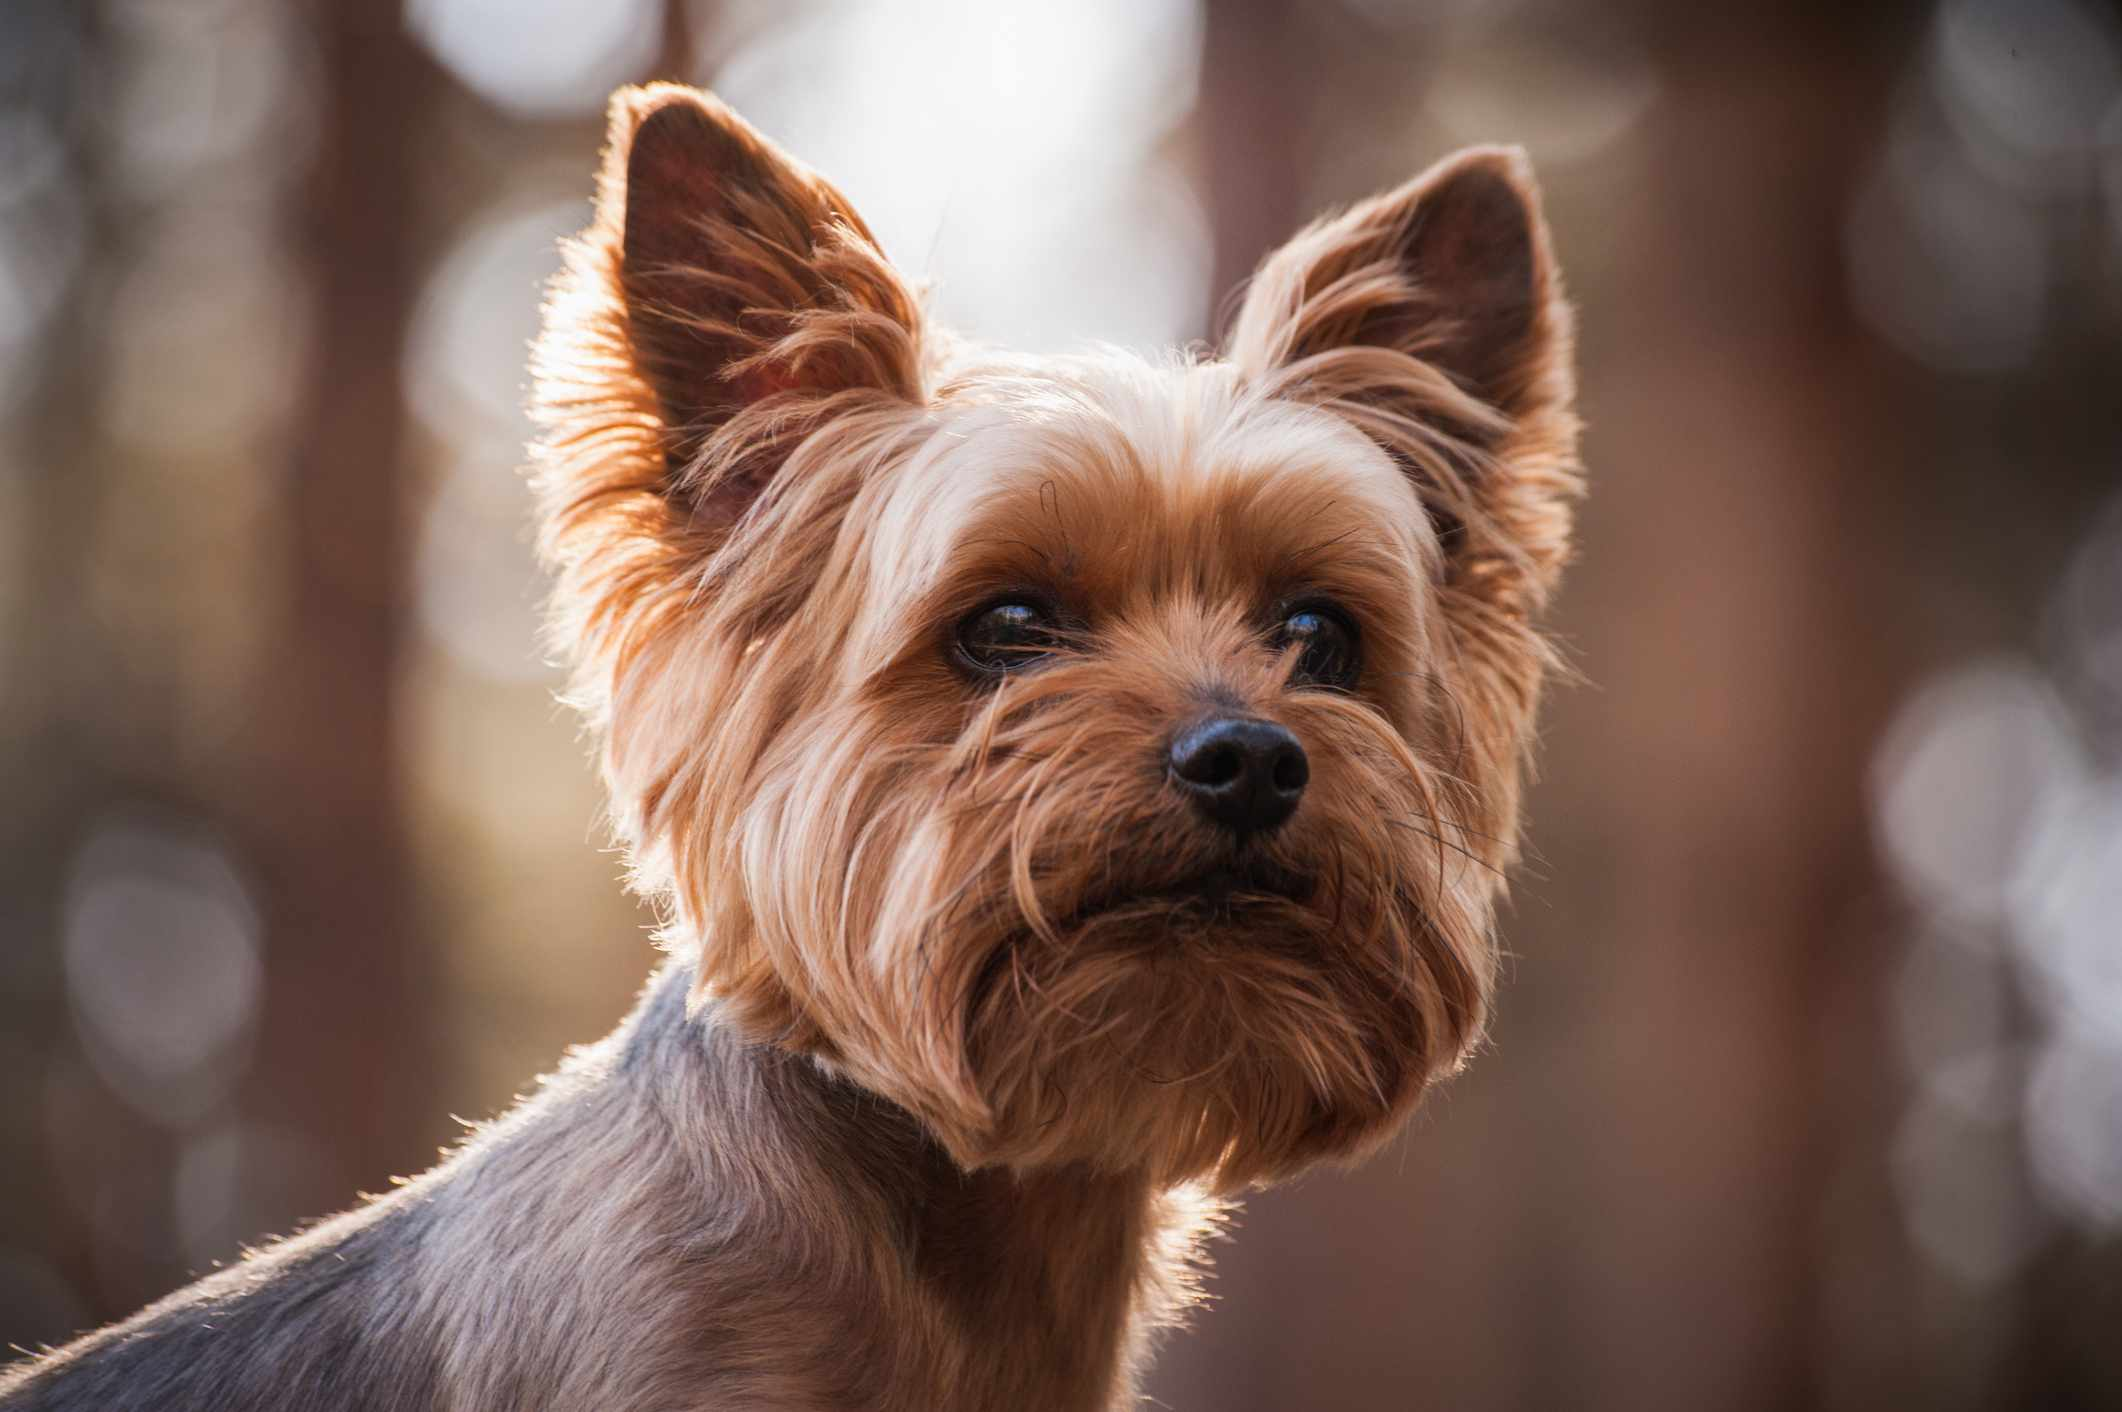 Close up headshot of a Yorkshire terrier